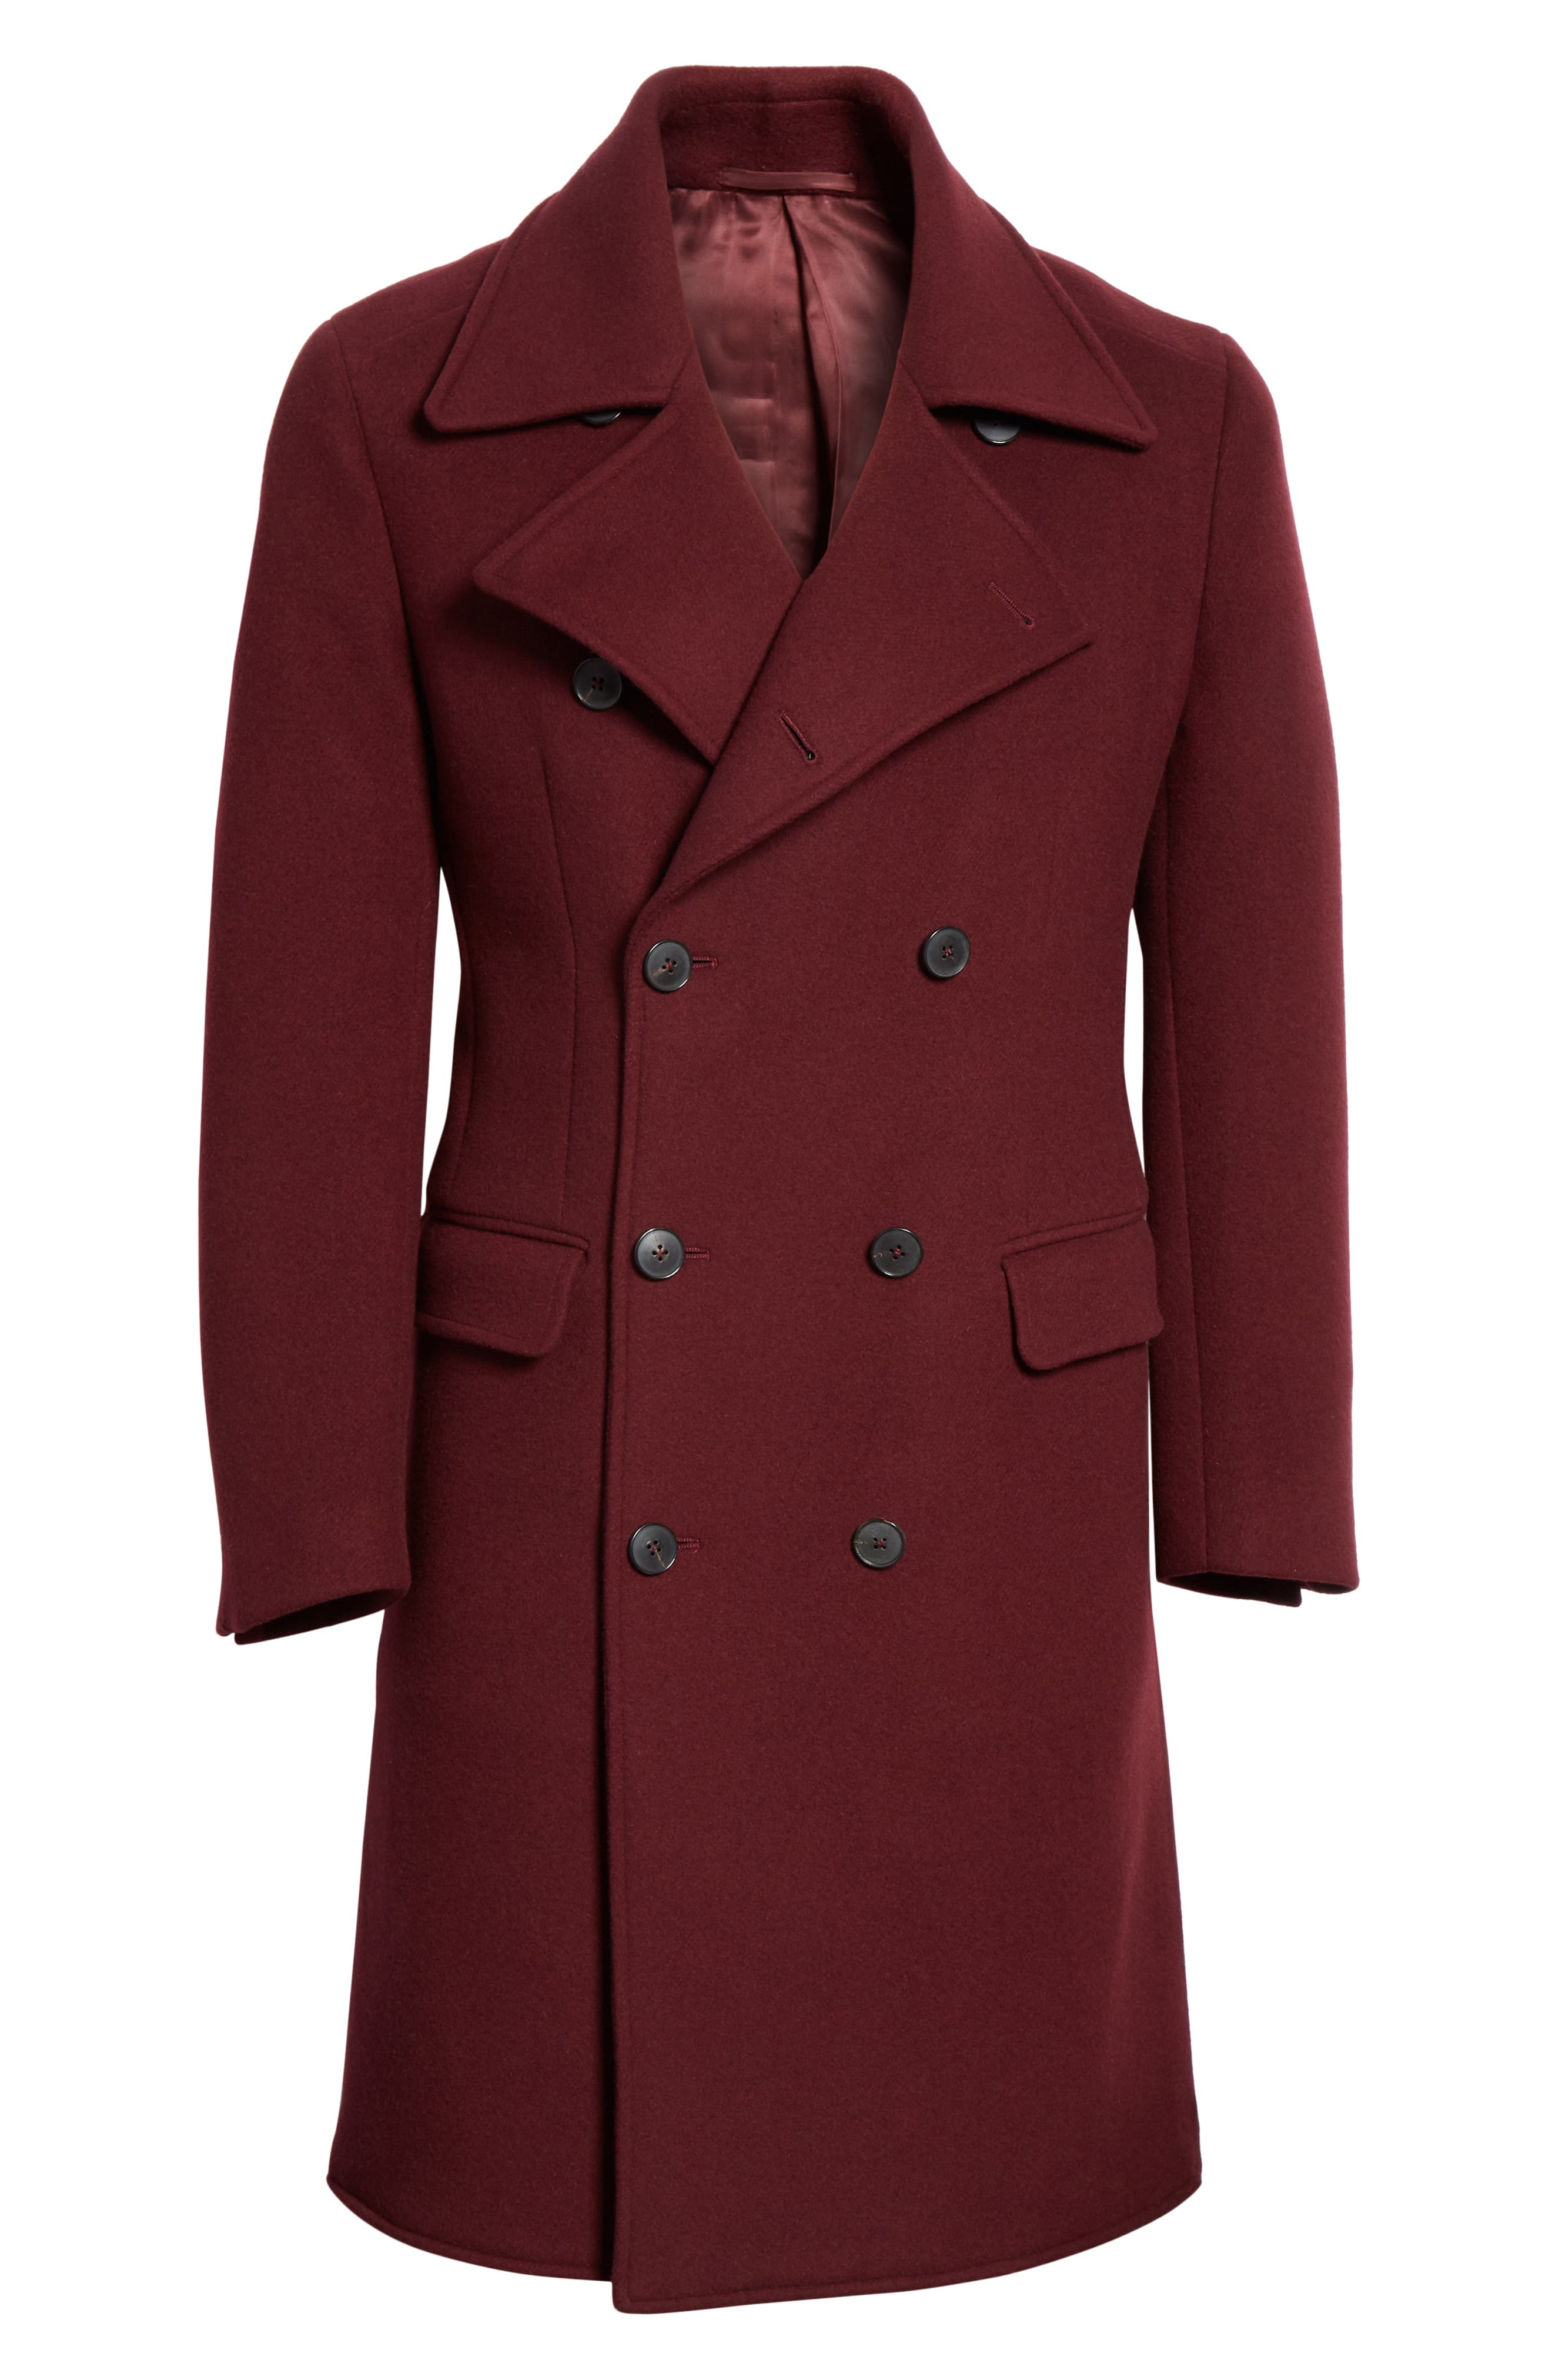 Double Breasted Wool & Cashmere Overcoat,                             Alternate thumbnail 5, color,                             930